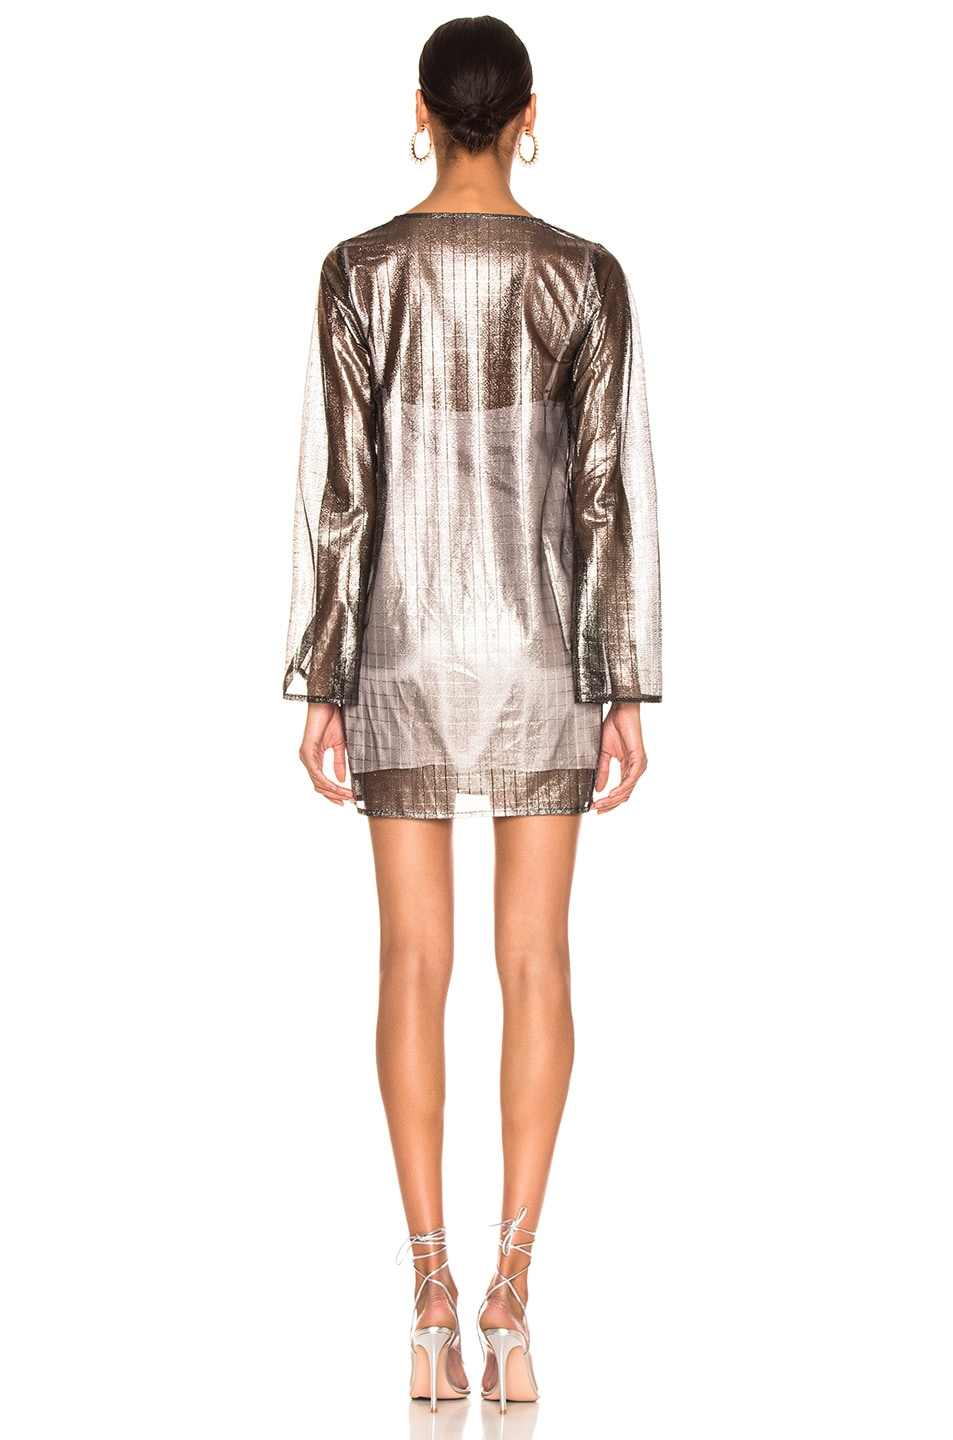 Image 3 of Atoir for FWRD One Of These Nights Dress in Metallic Pewter